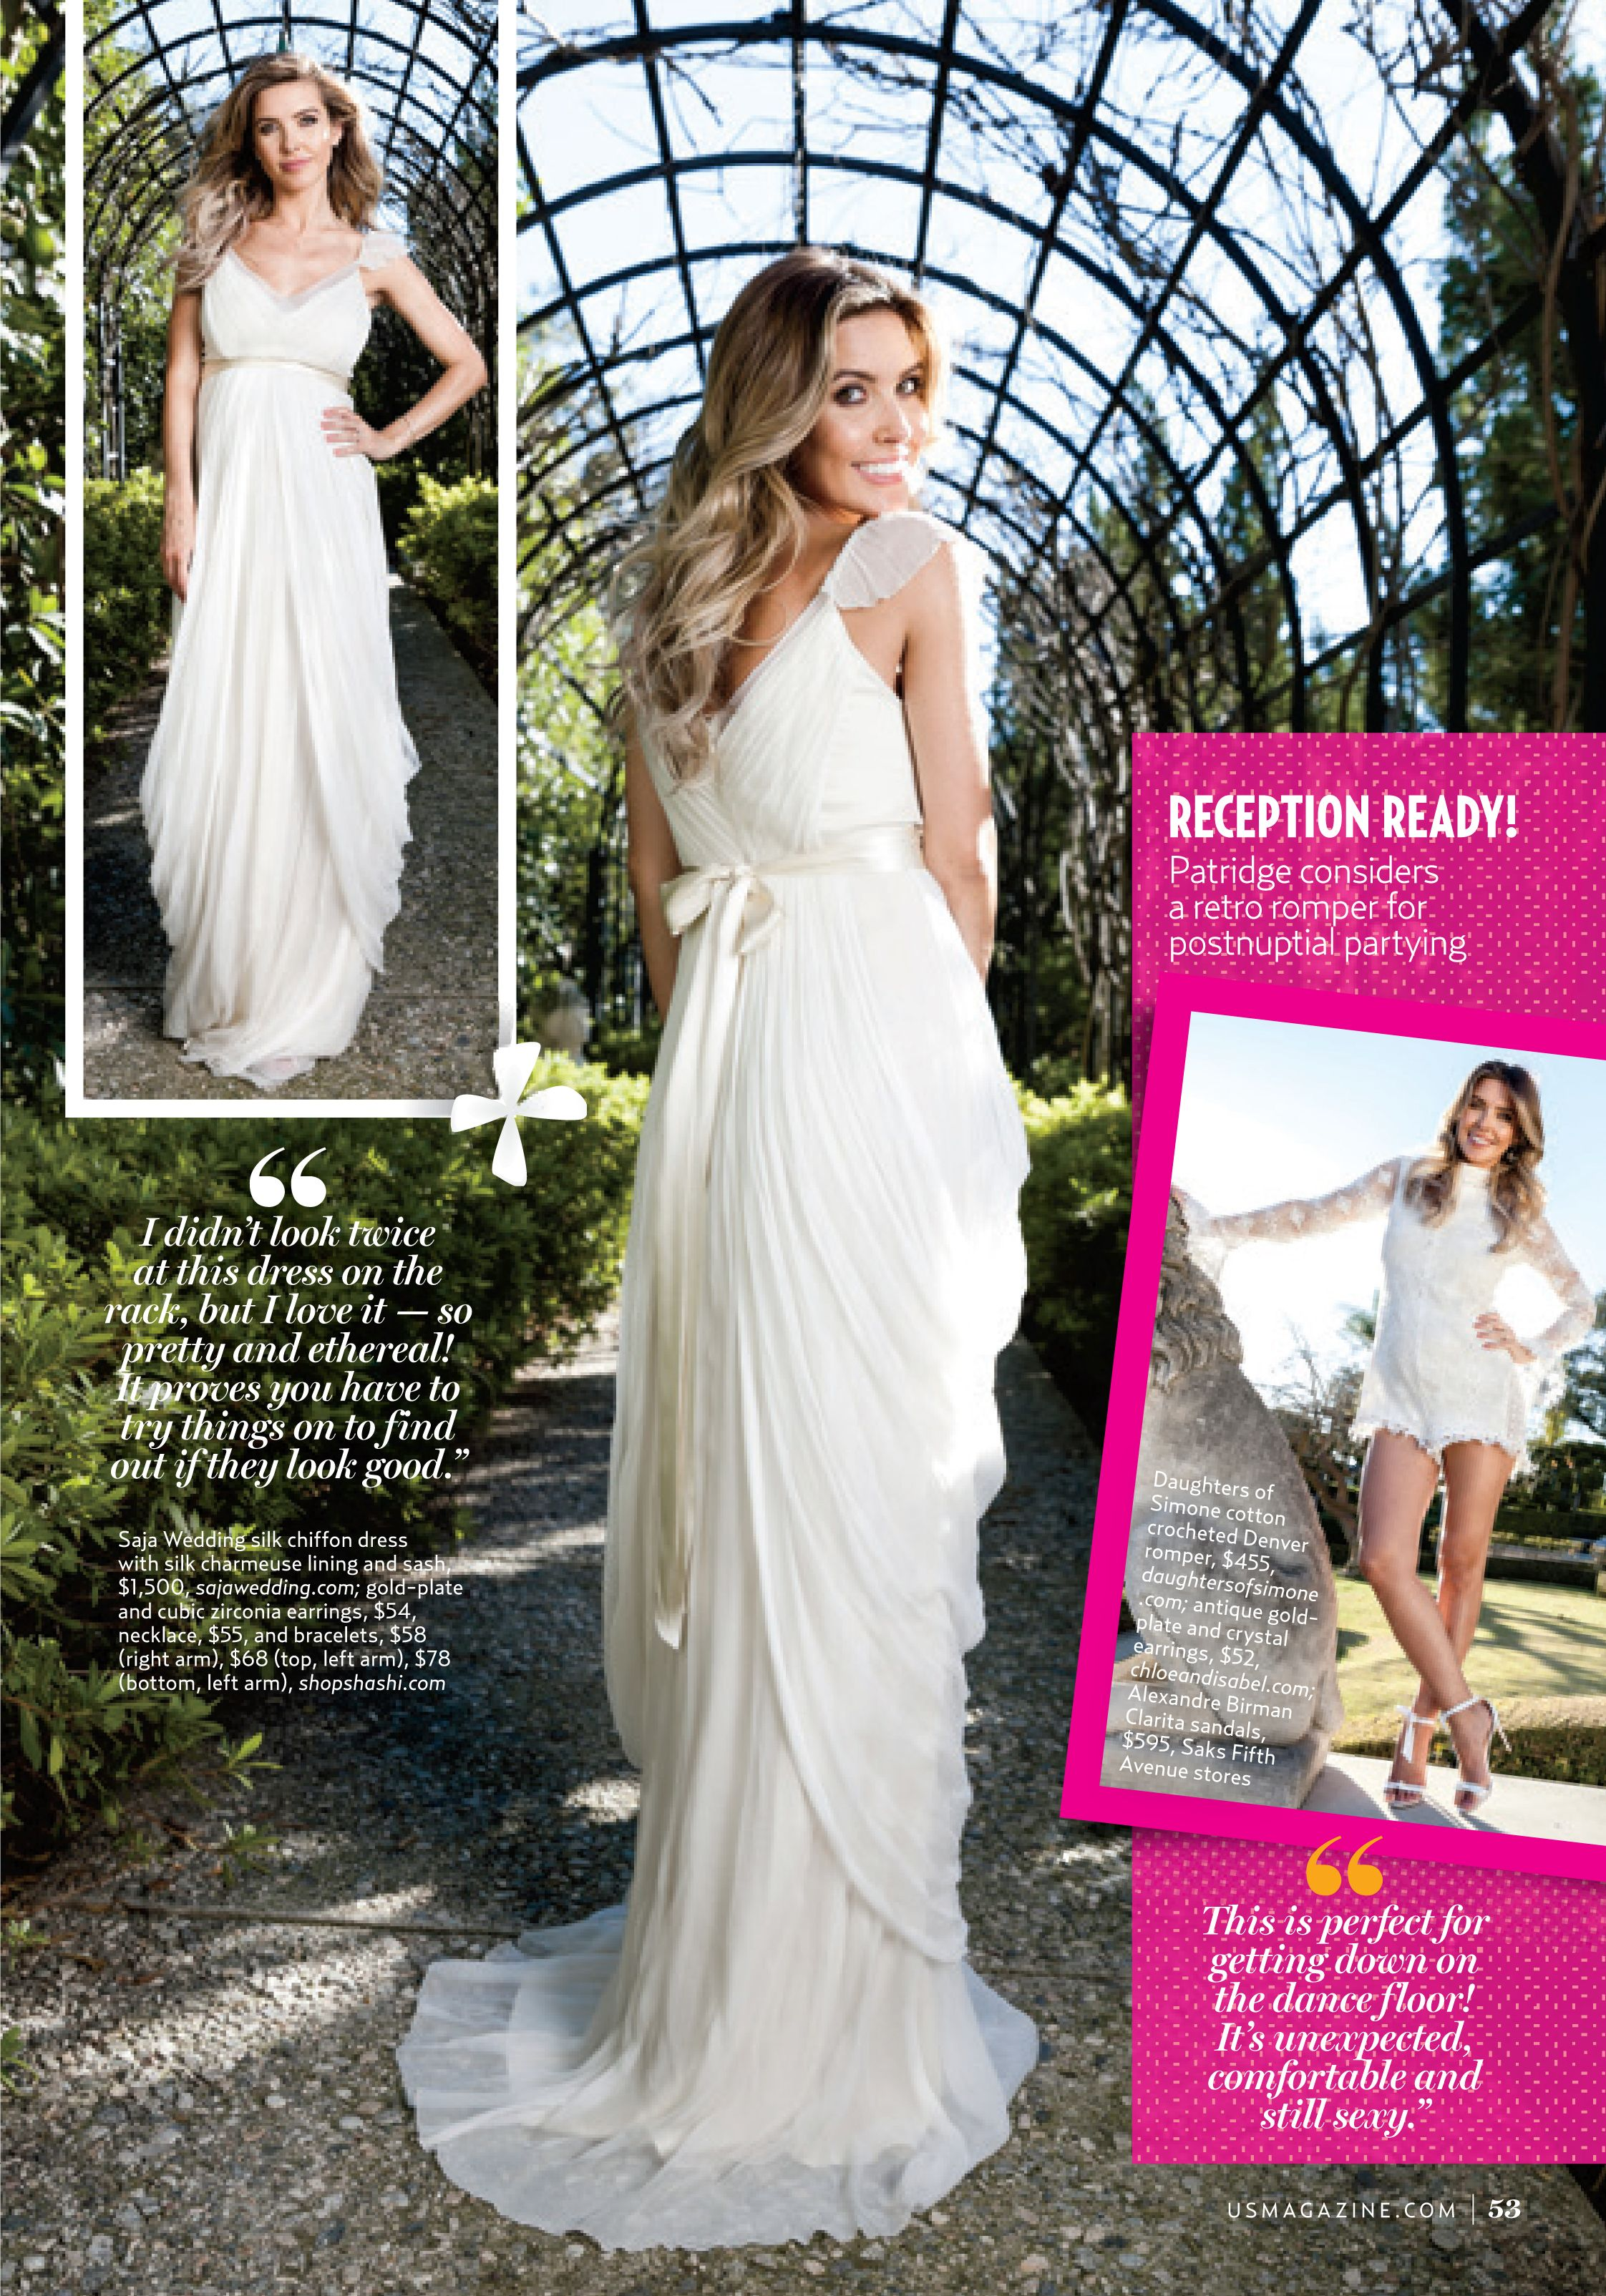 0301362d So excited to see the beautiful Audrina Patridge wearing our HB6365 gown in  this issue of Us Weekly!! # WeddingWednesday